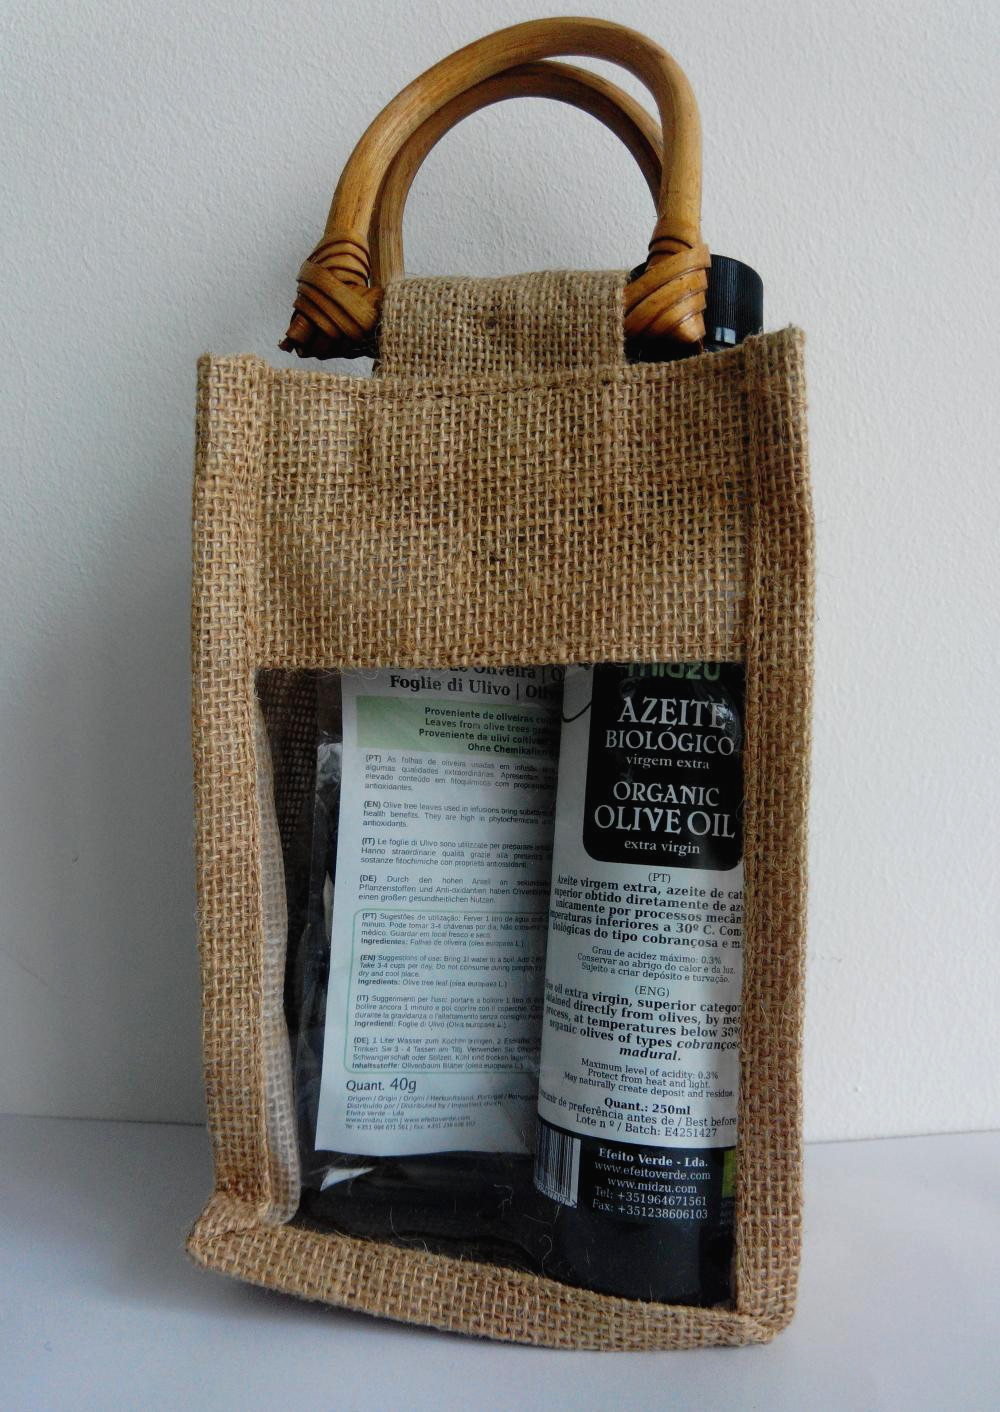 Midzu olive oil and olive leaf tea in juta bag